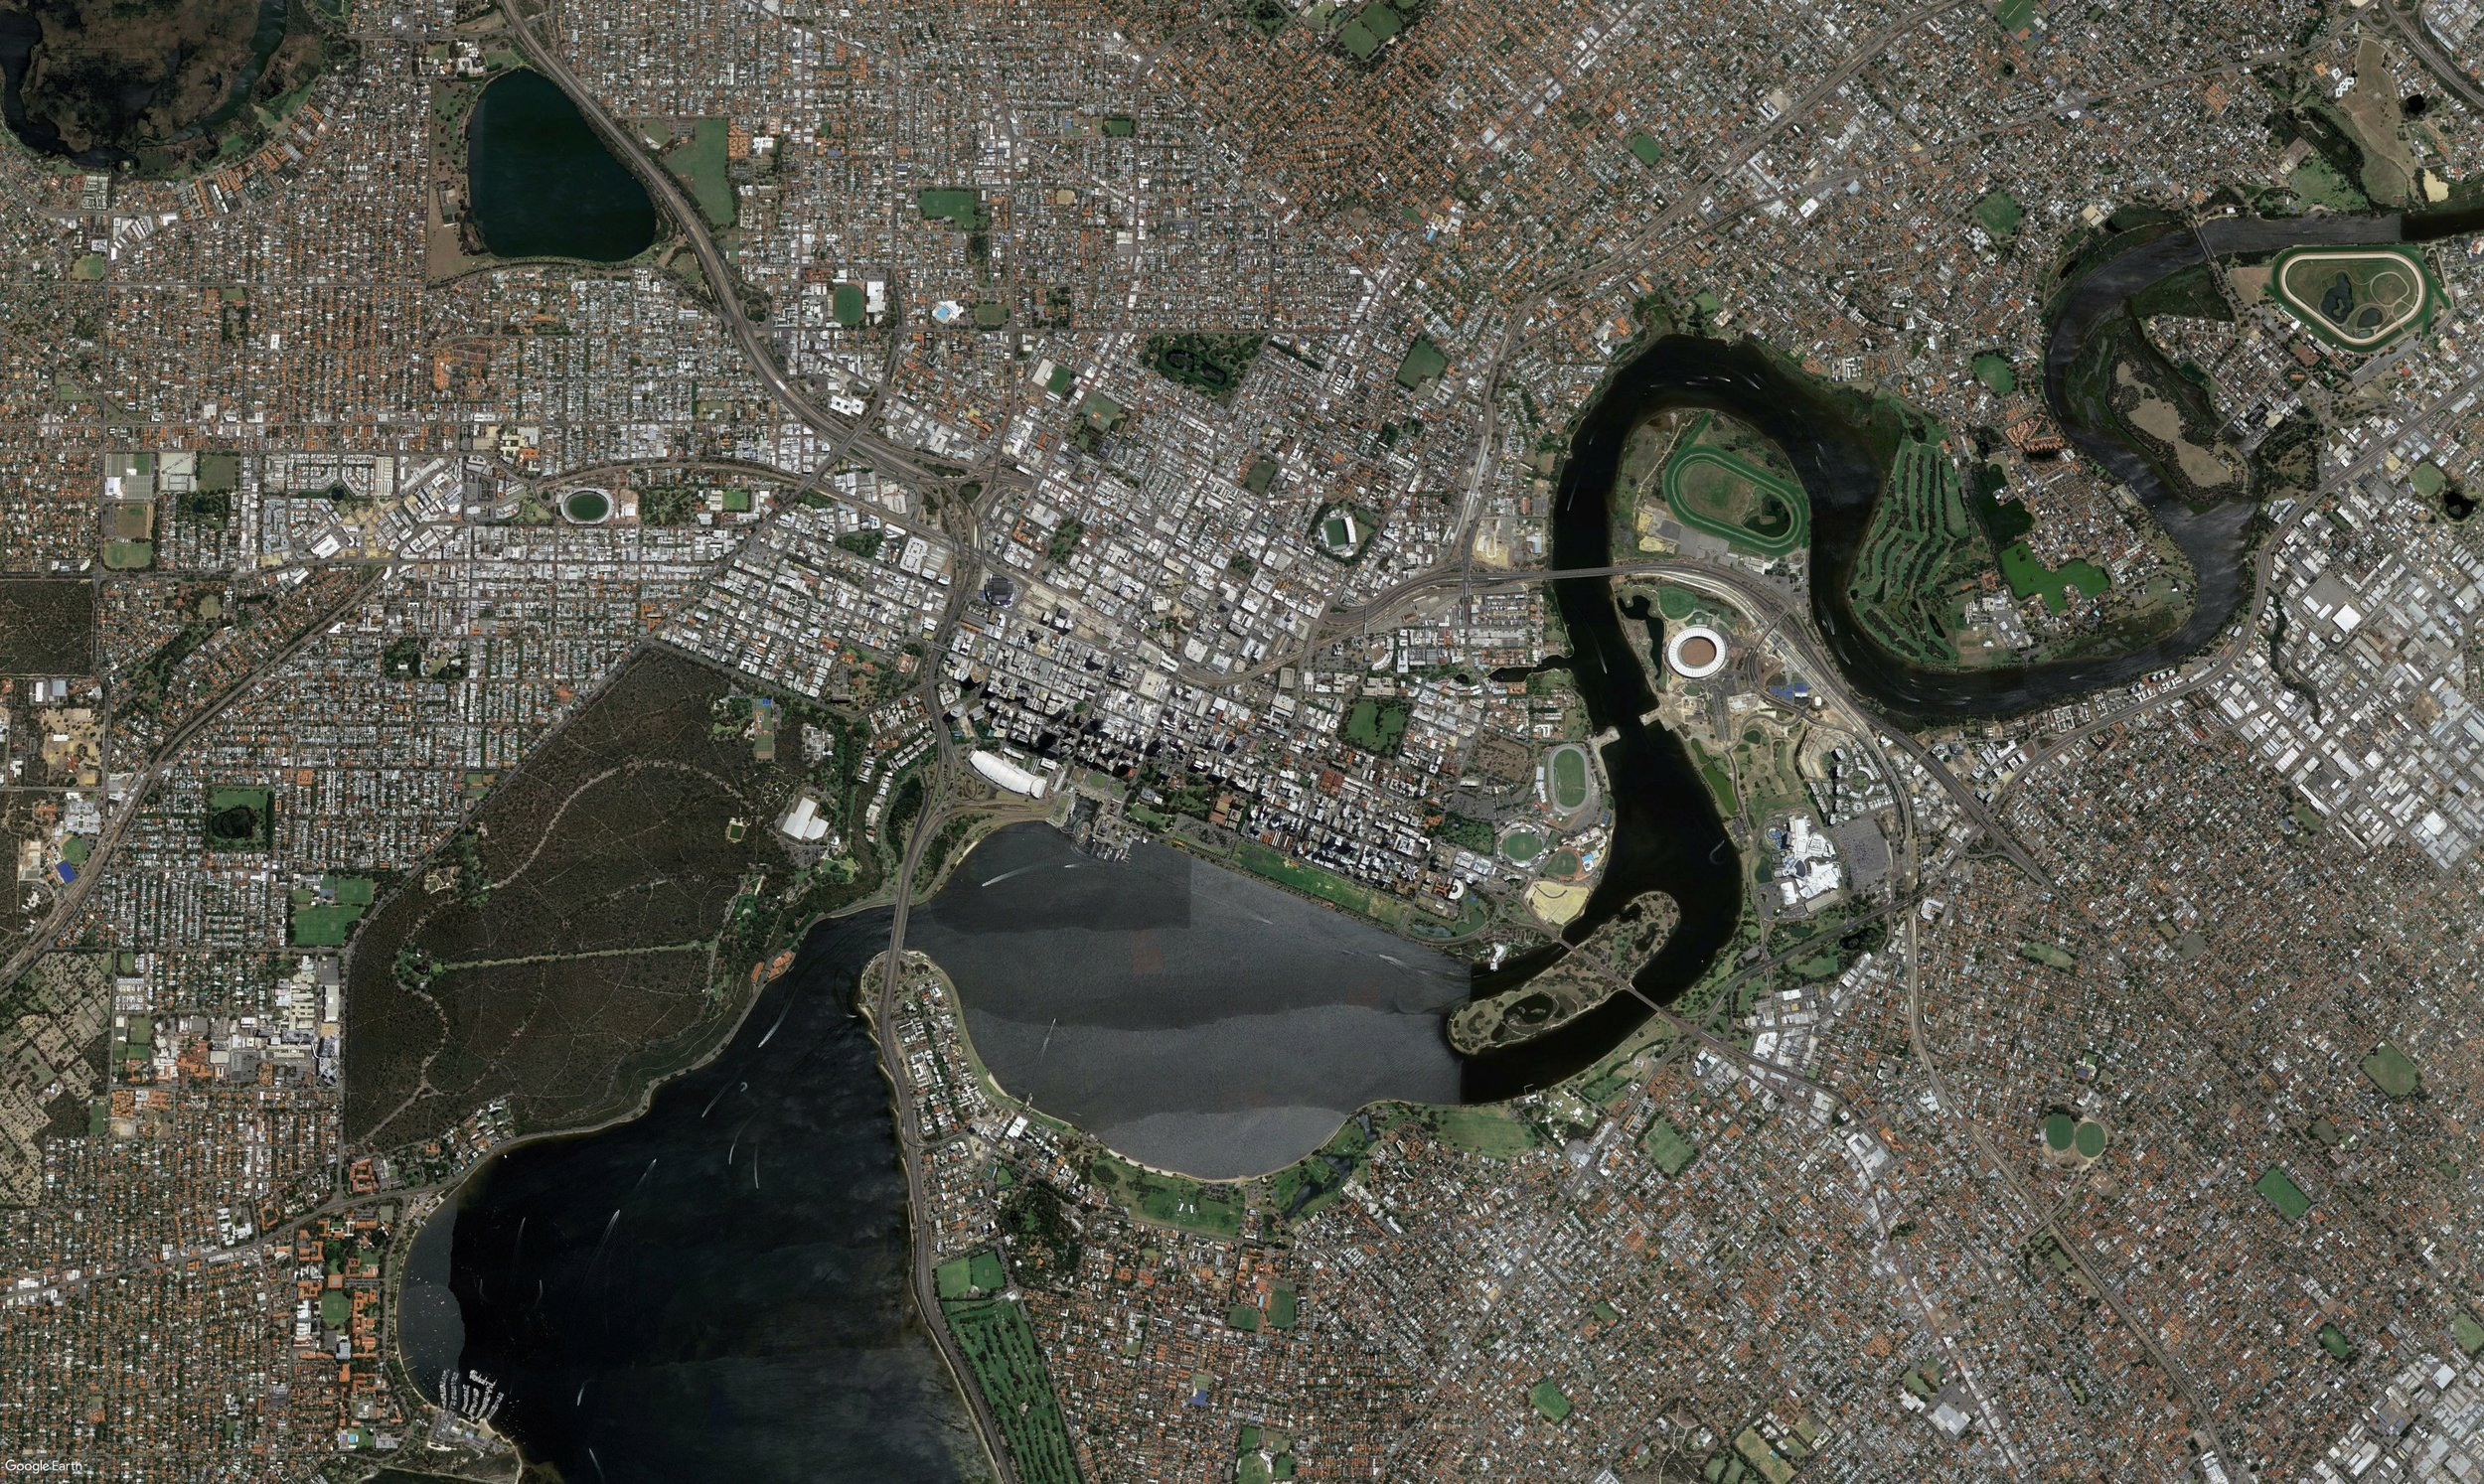 The City of Perth (Google Earth Pro)